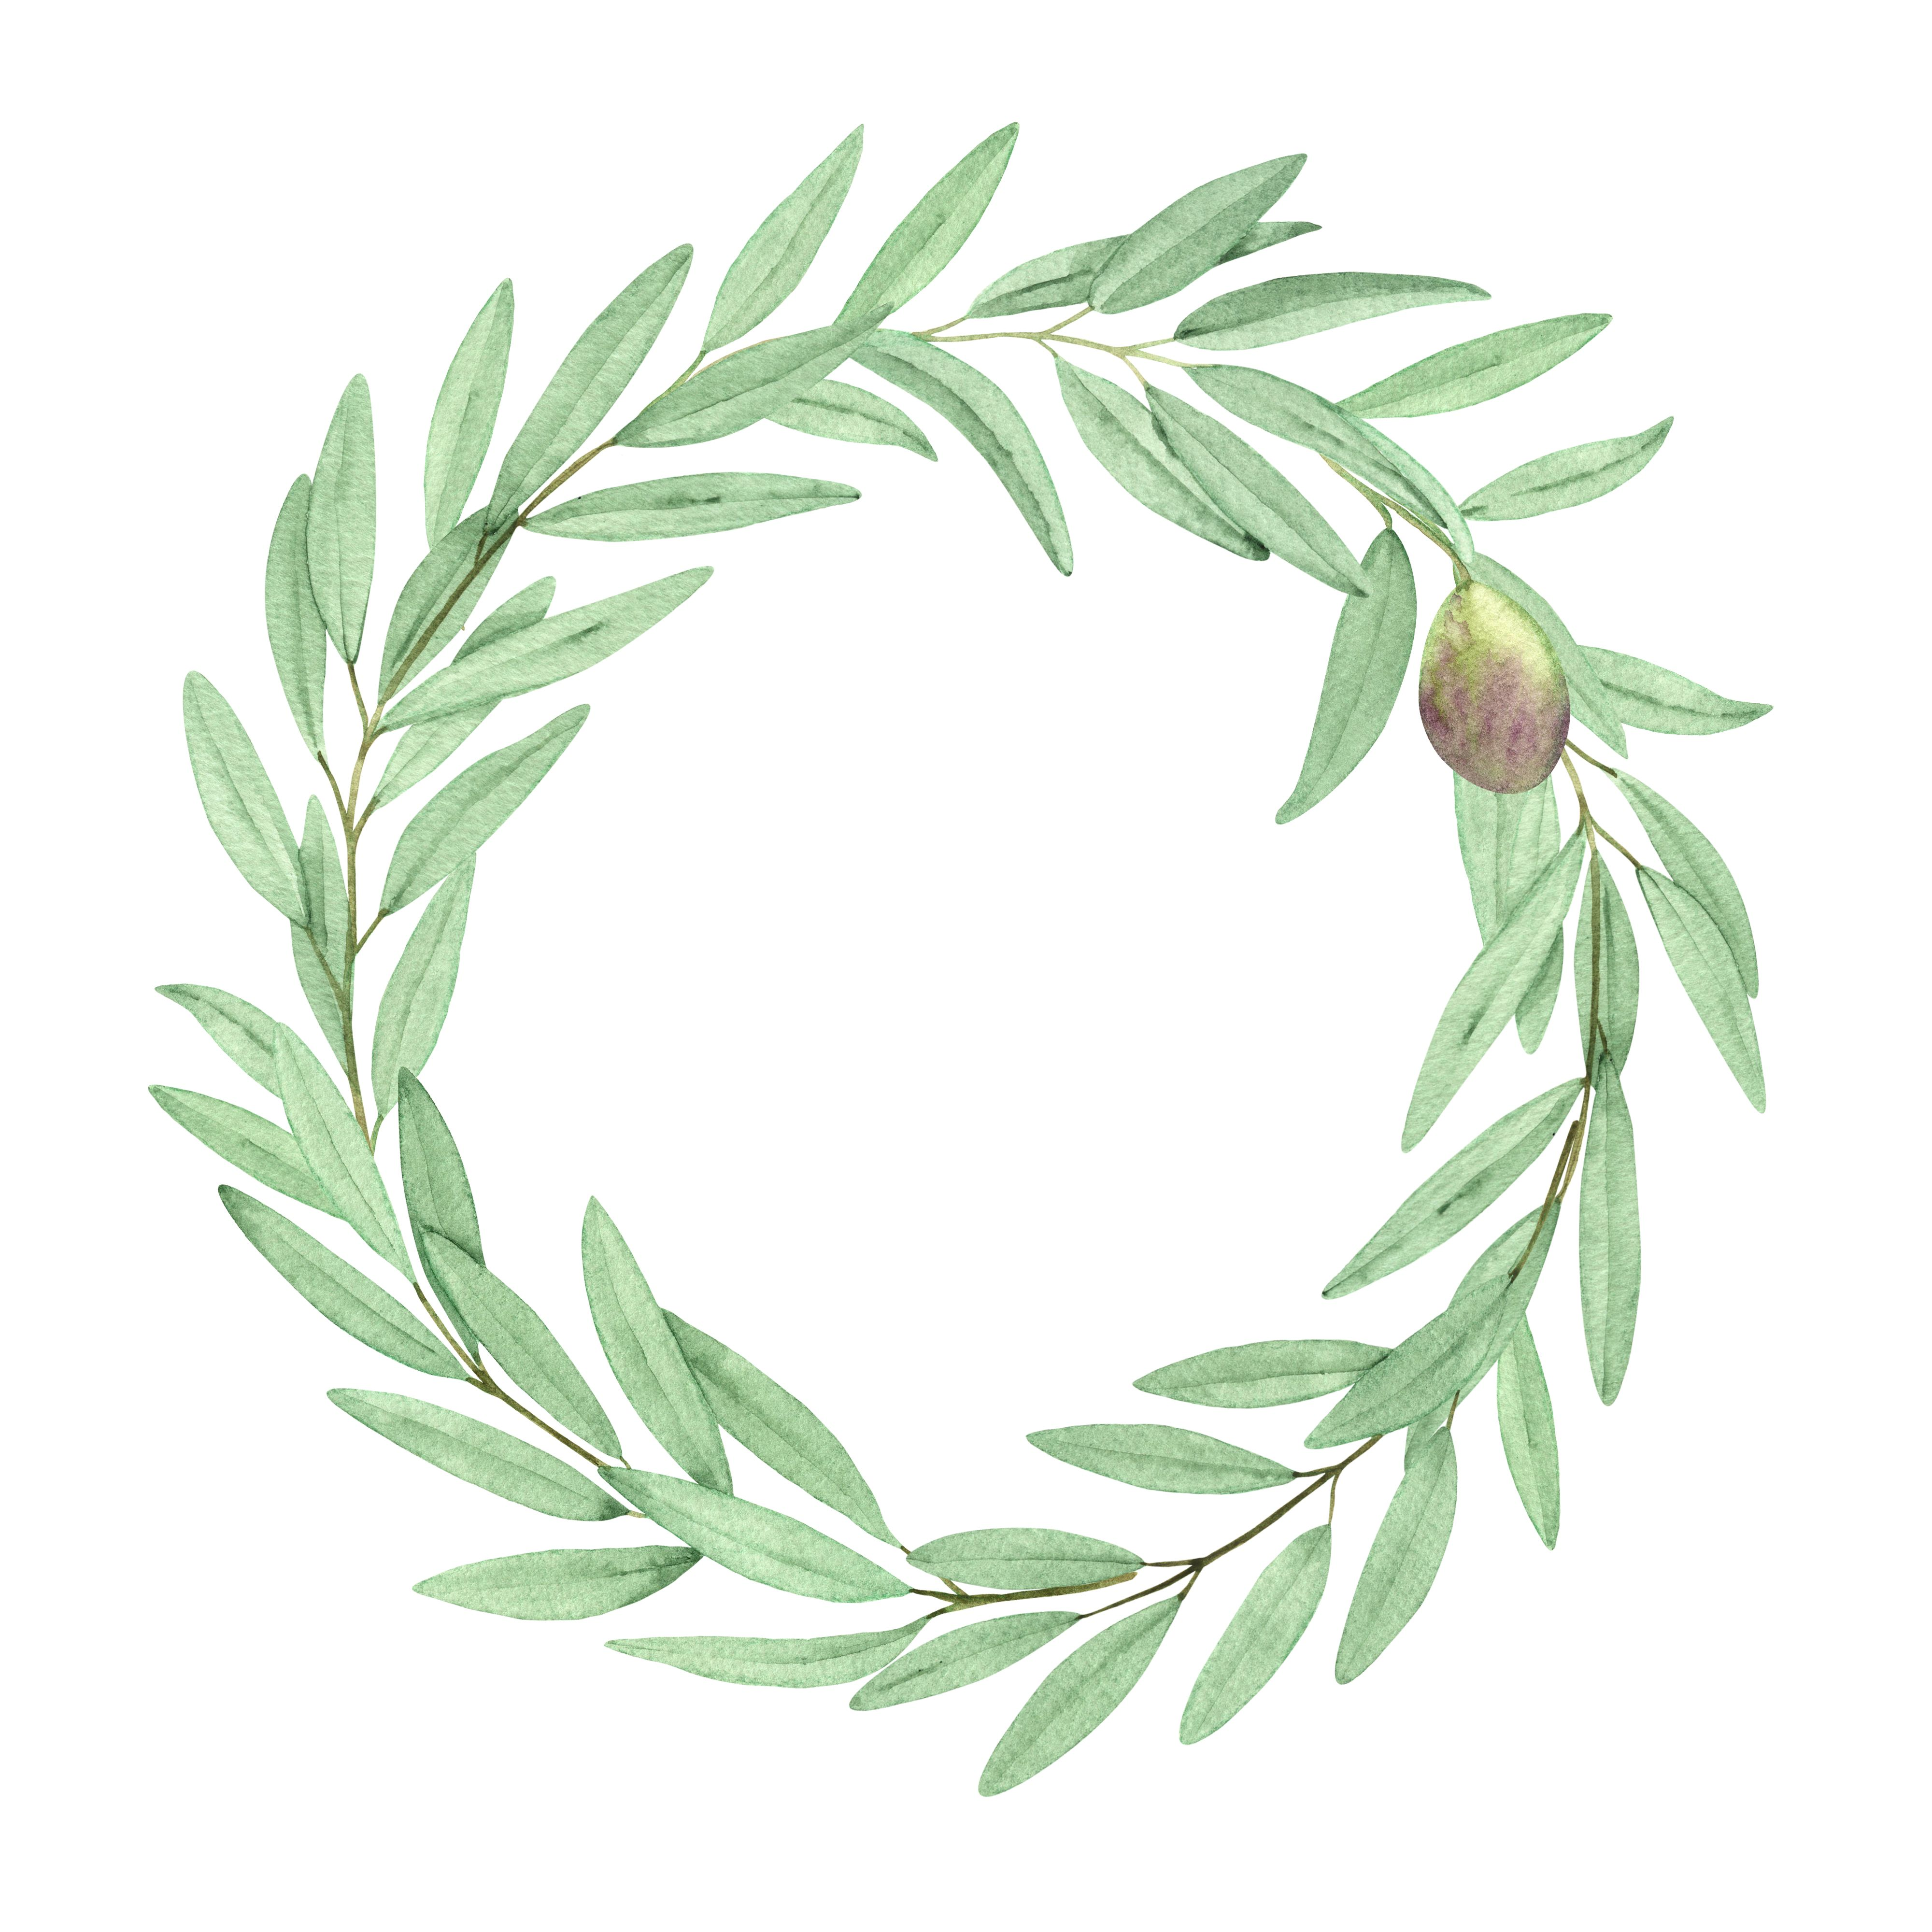 Watercolor Olive Clipart Wreaths And Single Elements Olive Branches Greenery Foliage Wreaths Png Wreath Watercolor Olive Branch Botanical Watercolor